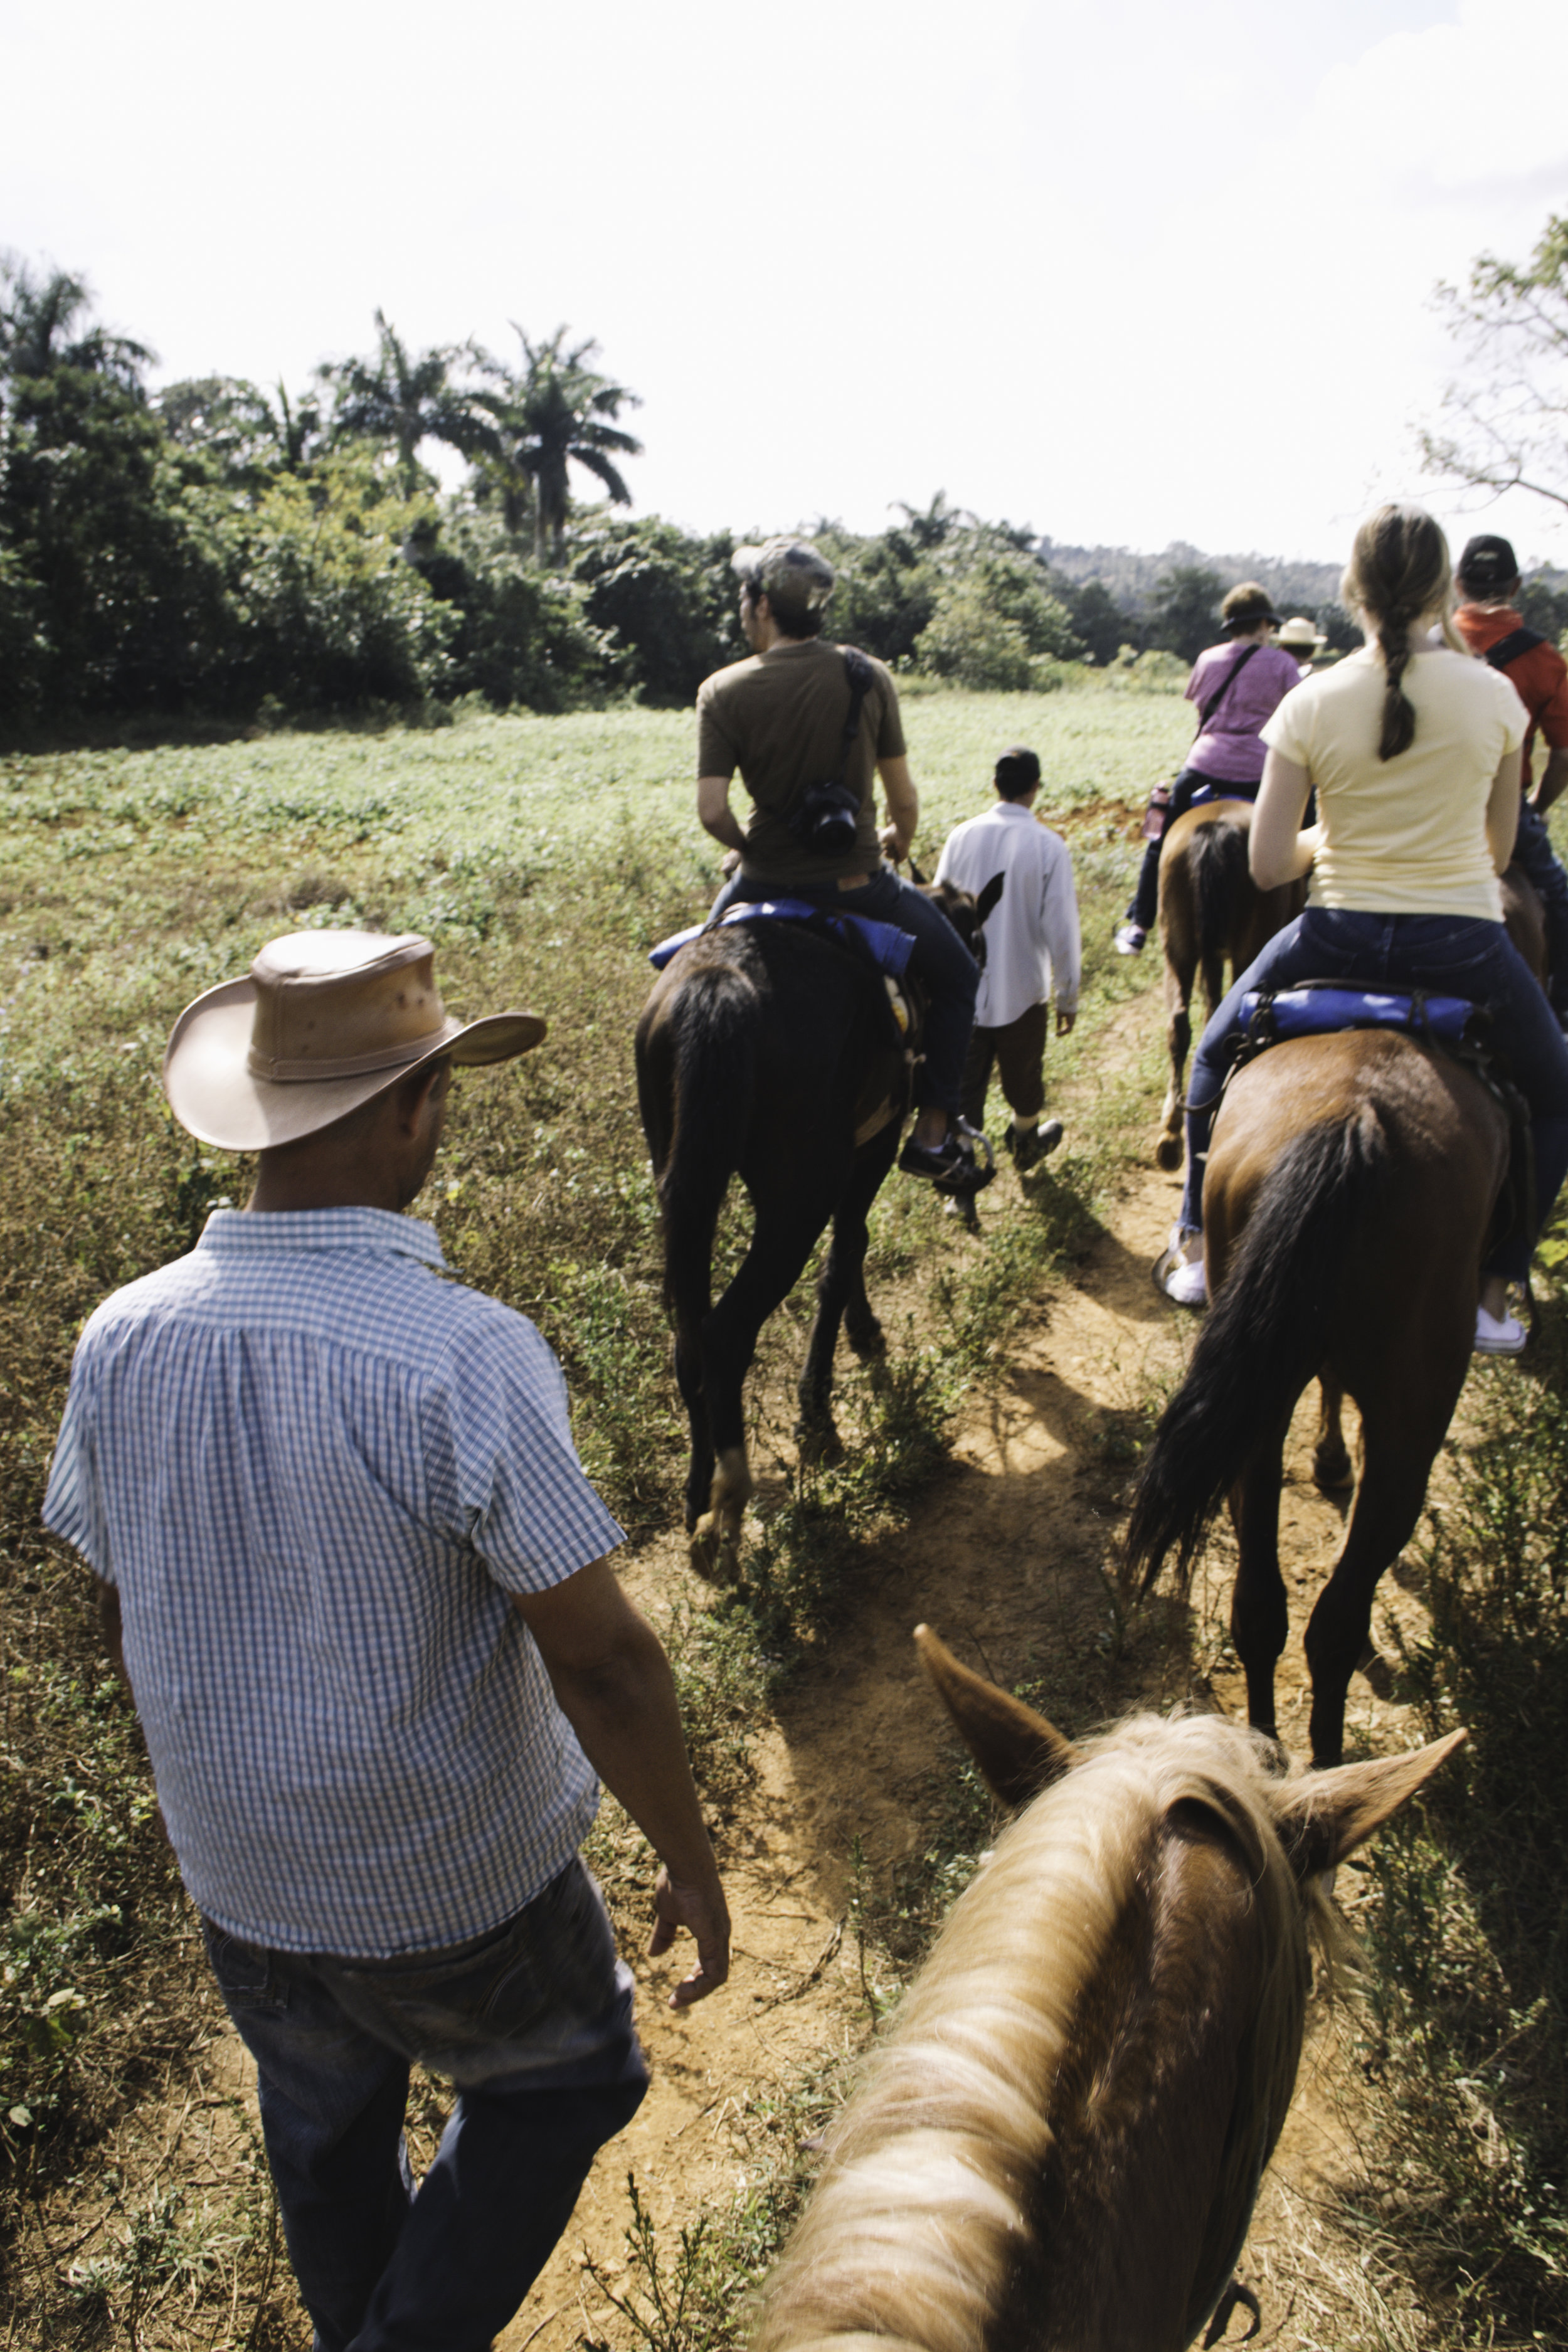 Our Favorite Day In Cuba Horseback Riding In Vinales Beyond Ordinary Guides Curated Travel Guides Authentic Stores For The Aesthetic Minded Traveler